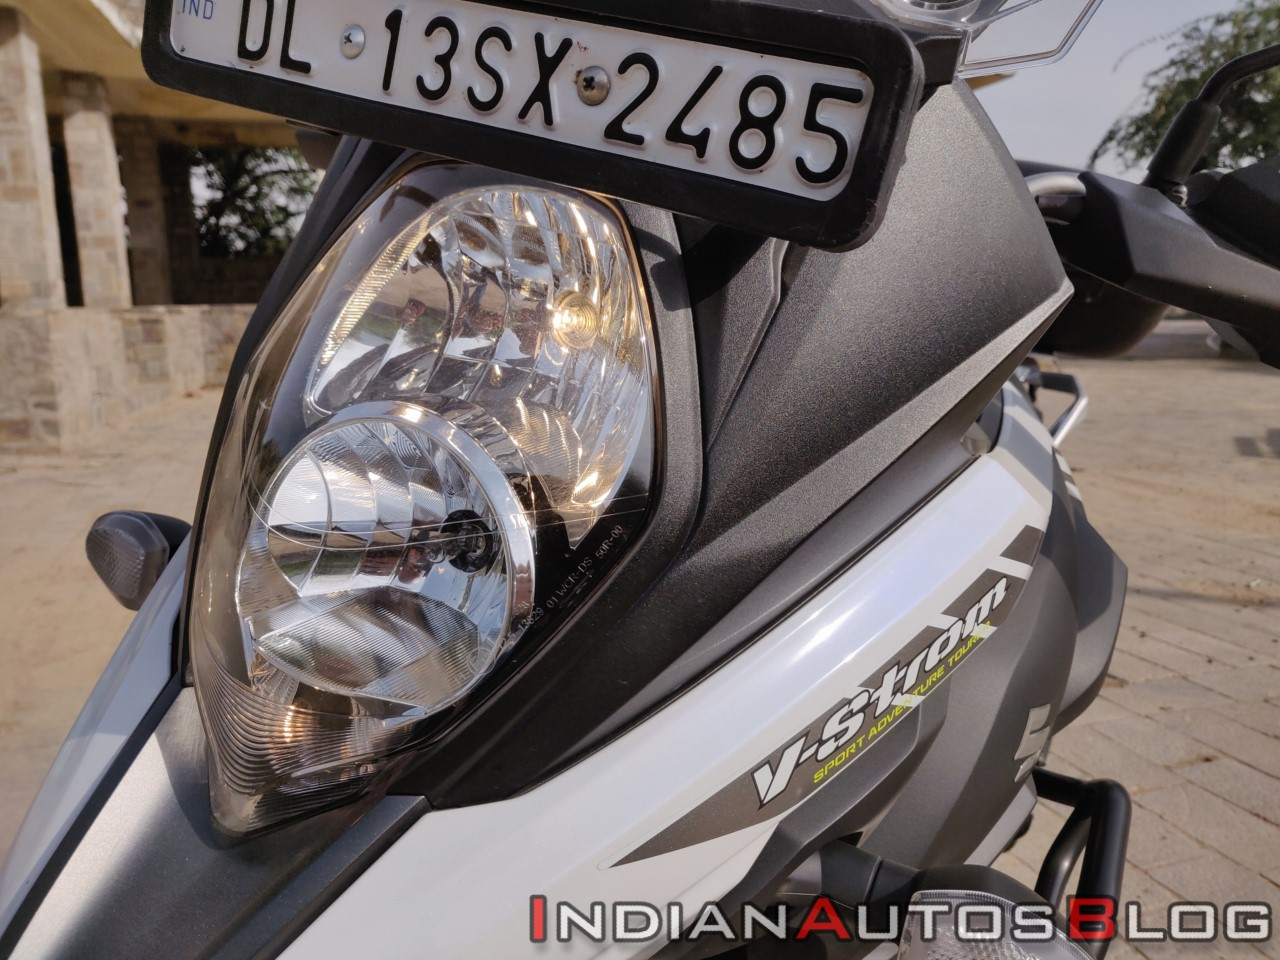 Suzuki V Strom 650 Xt Details Headlight Close Up